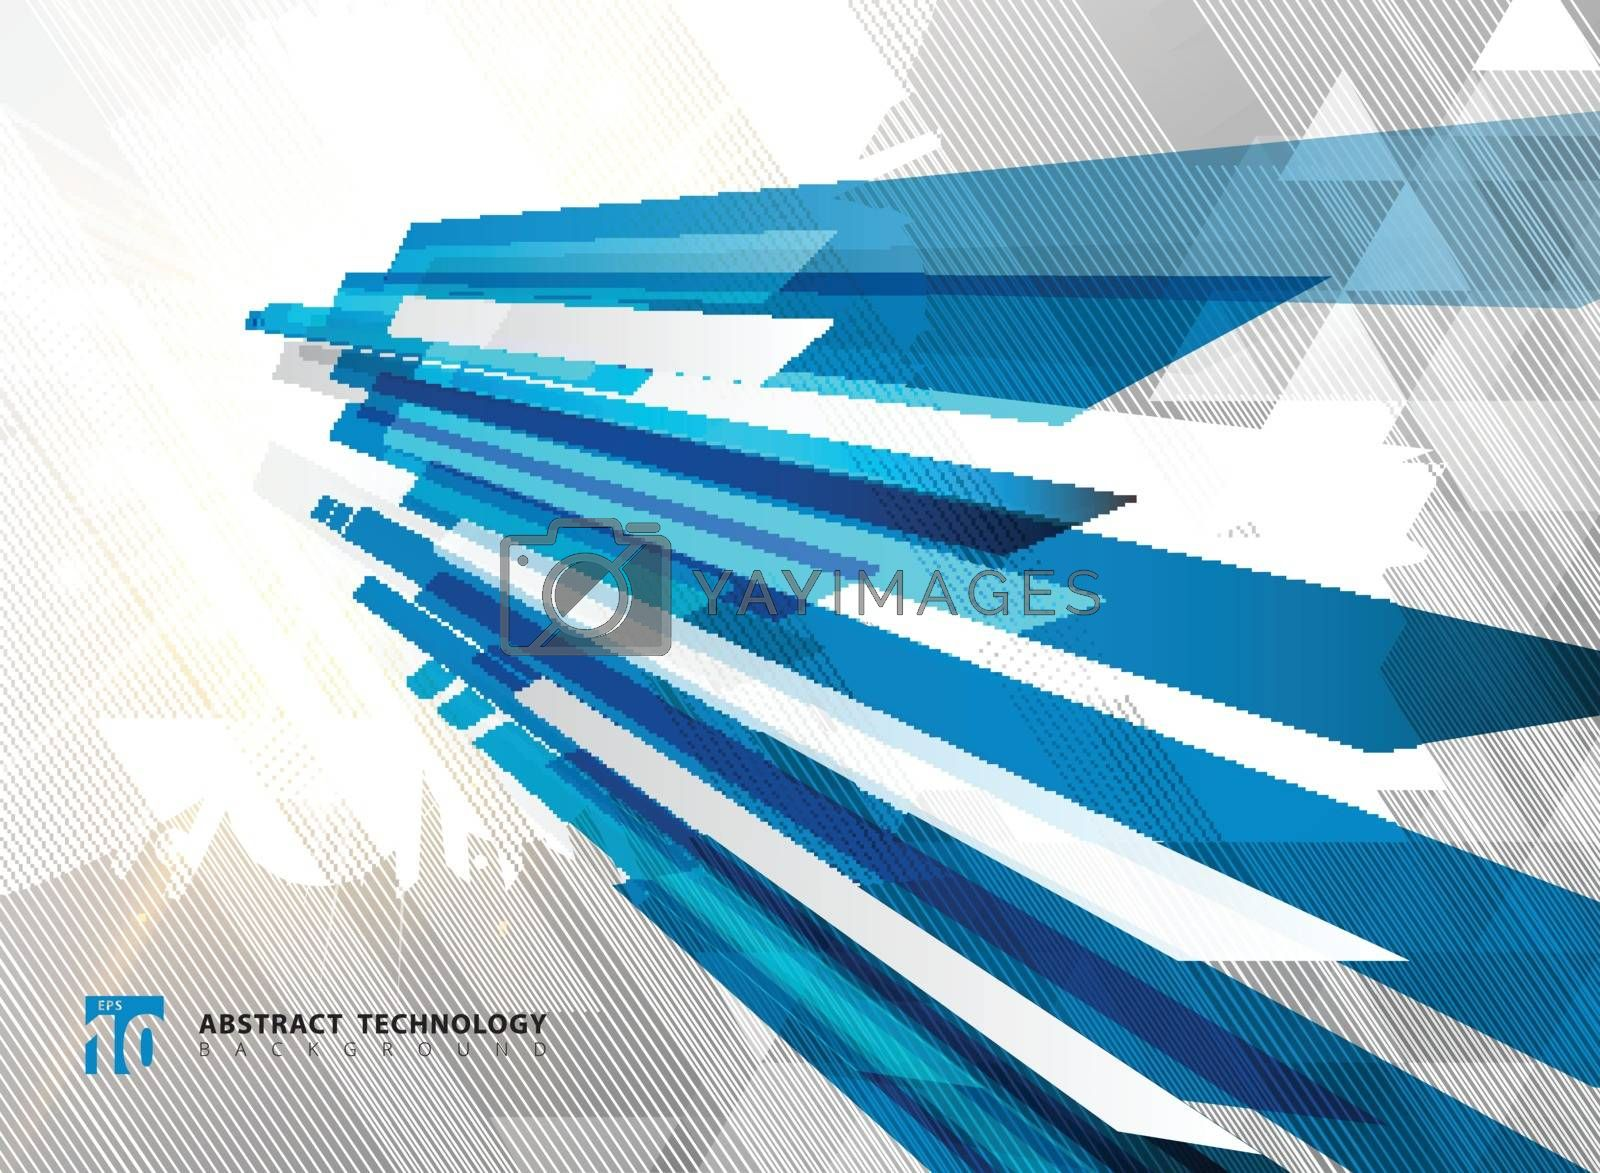 Abstract perspective technology geometric blue color shiny motion background and lines texture with lighting burst effect.  for brochure, print, ad, magazine, poster, website, magazine, leaflet, annual report. Vector corporate design